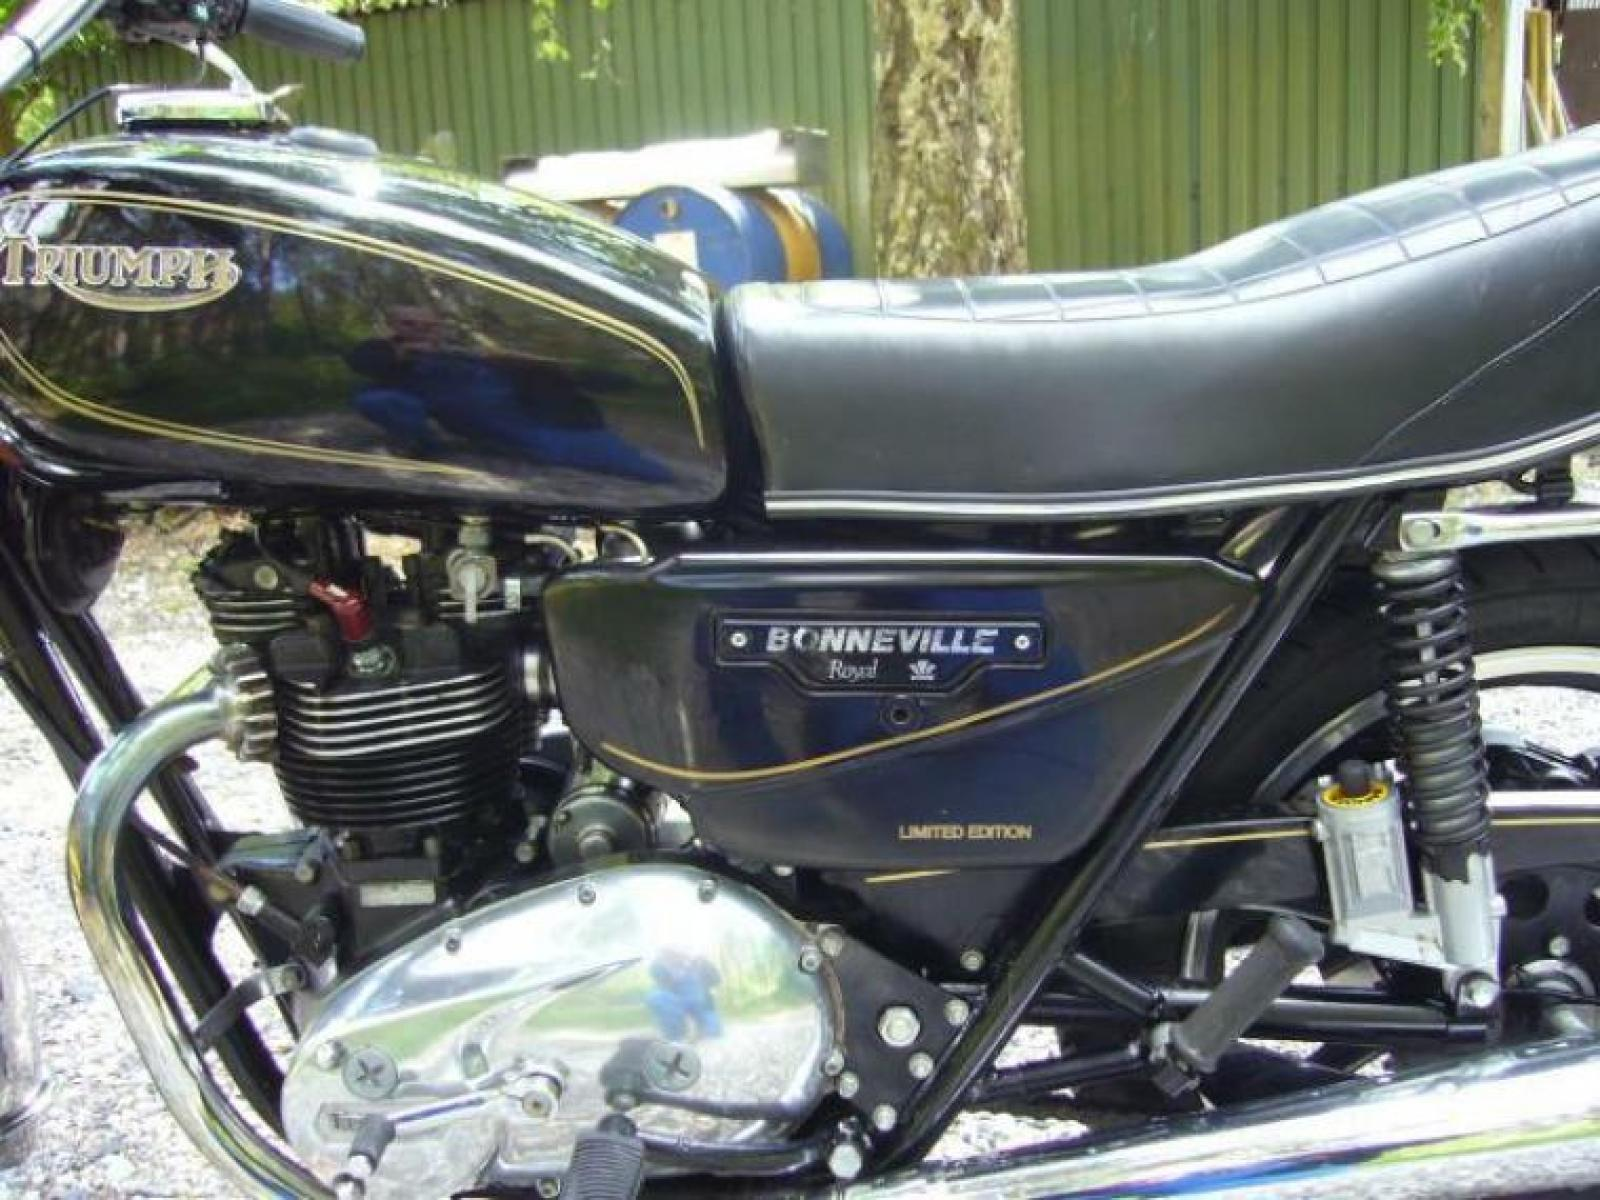 Triumph T140 ES Bonneville Royal Limited Edition #6